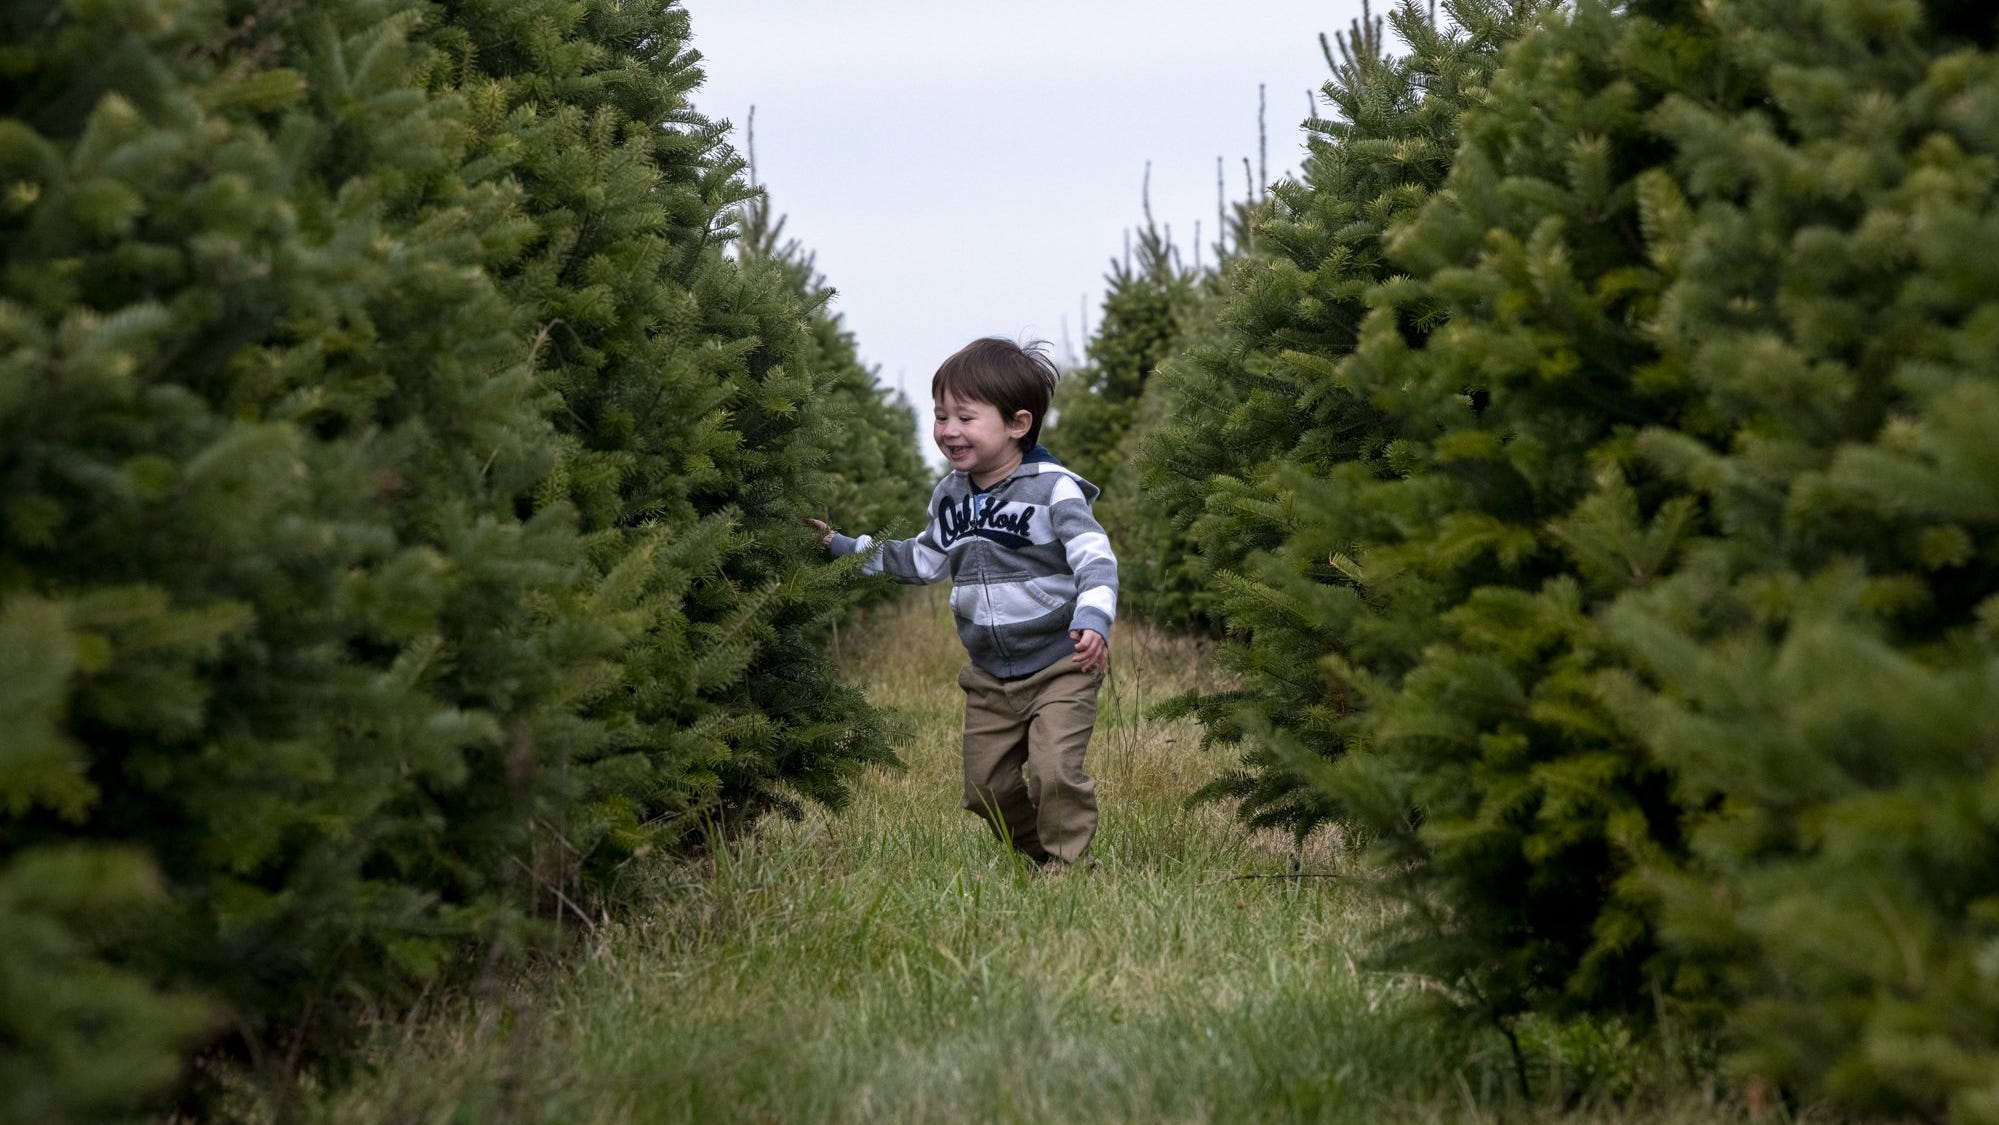 Central Ohio Christmas Tree Farms Expecting High Demand